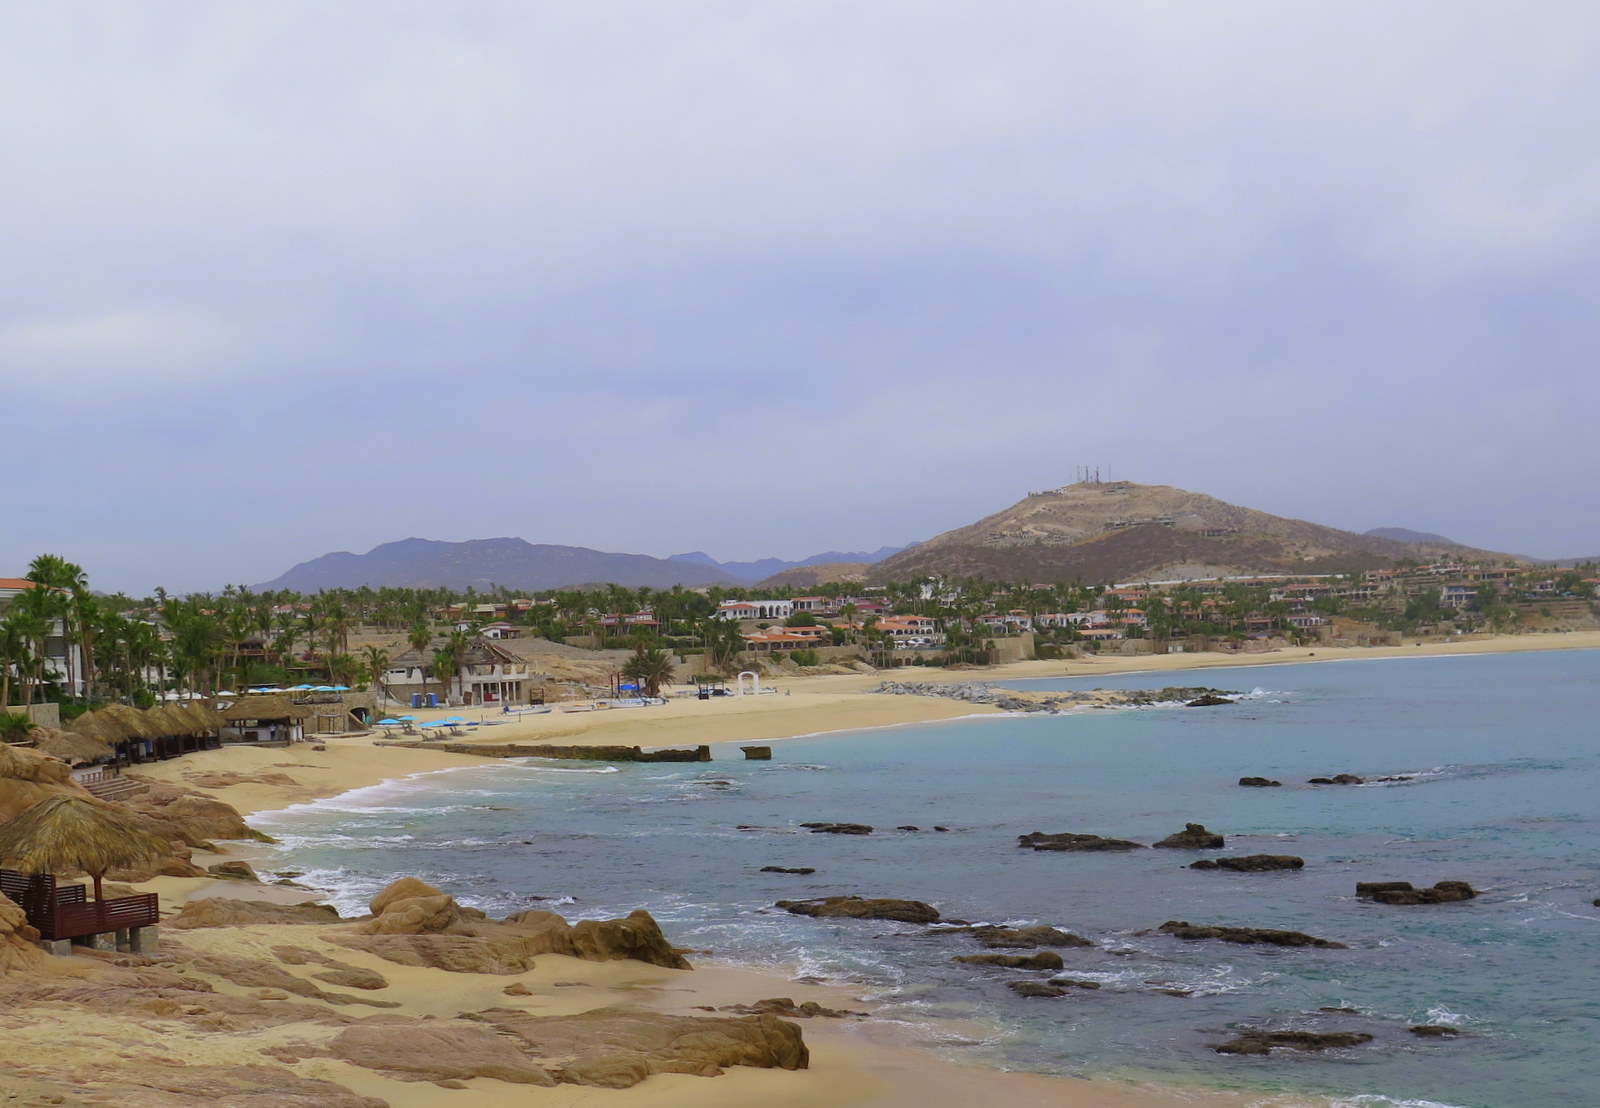 Cabo San Lucas and San Jose del Cabo make a fine wedding spot. JIM BYERS PHOTO